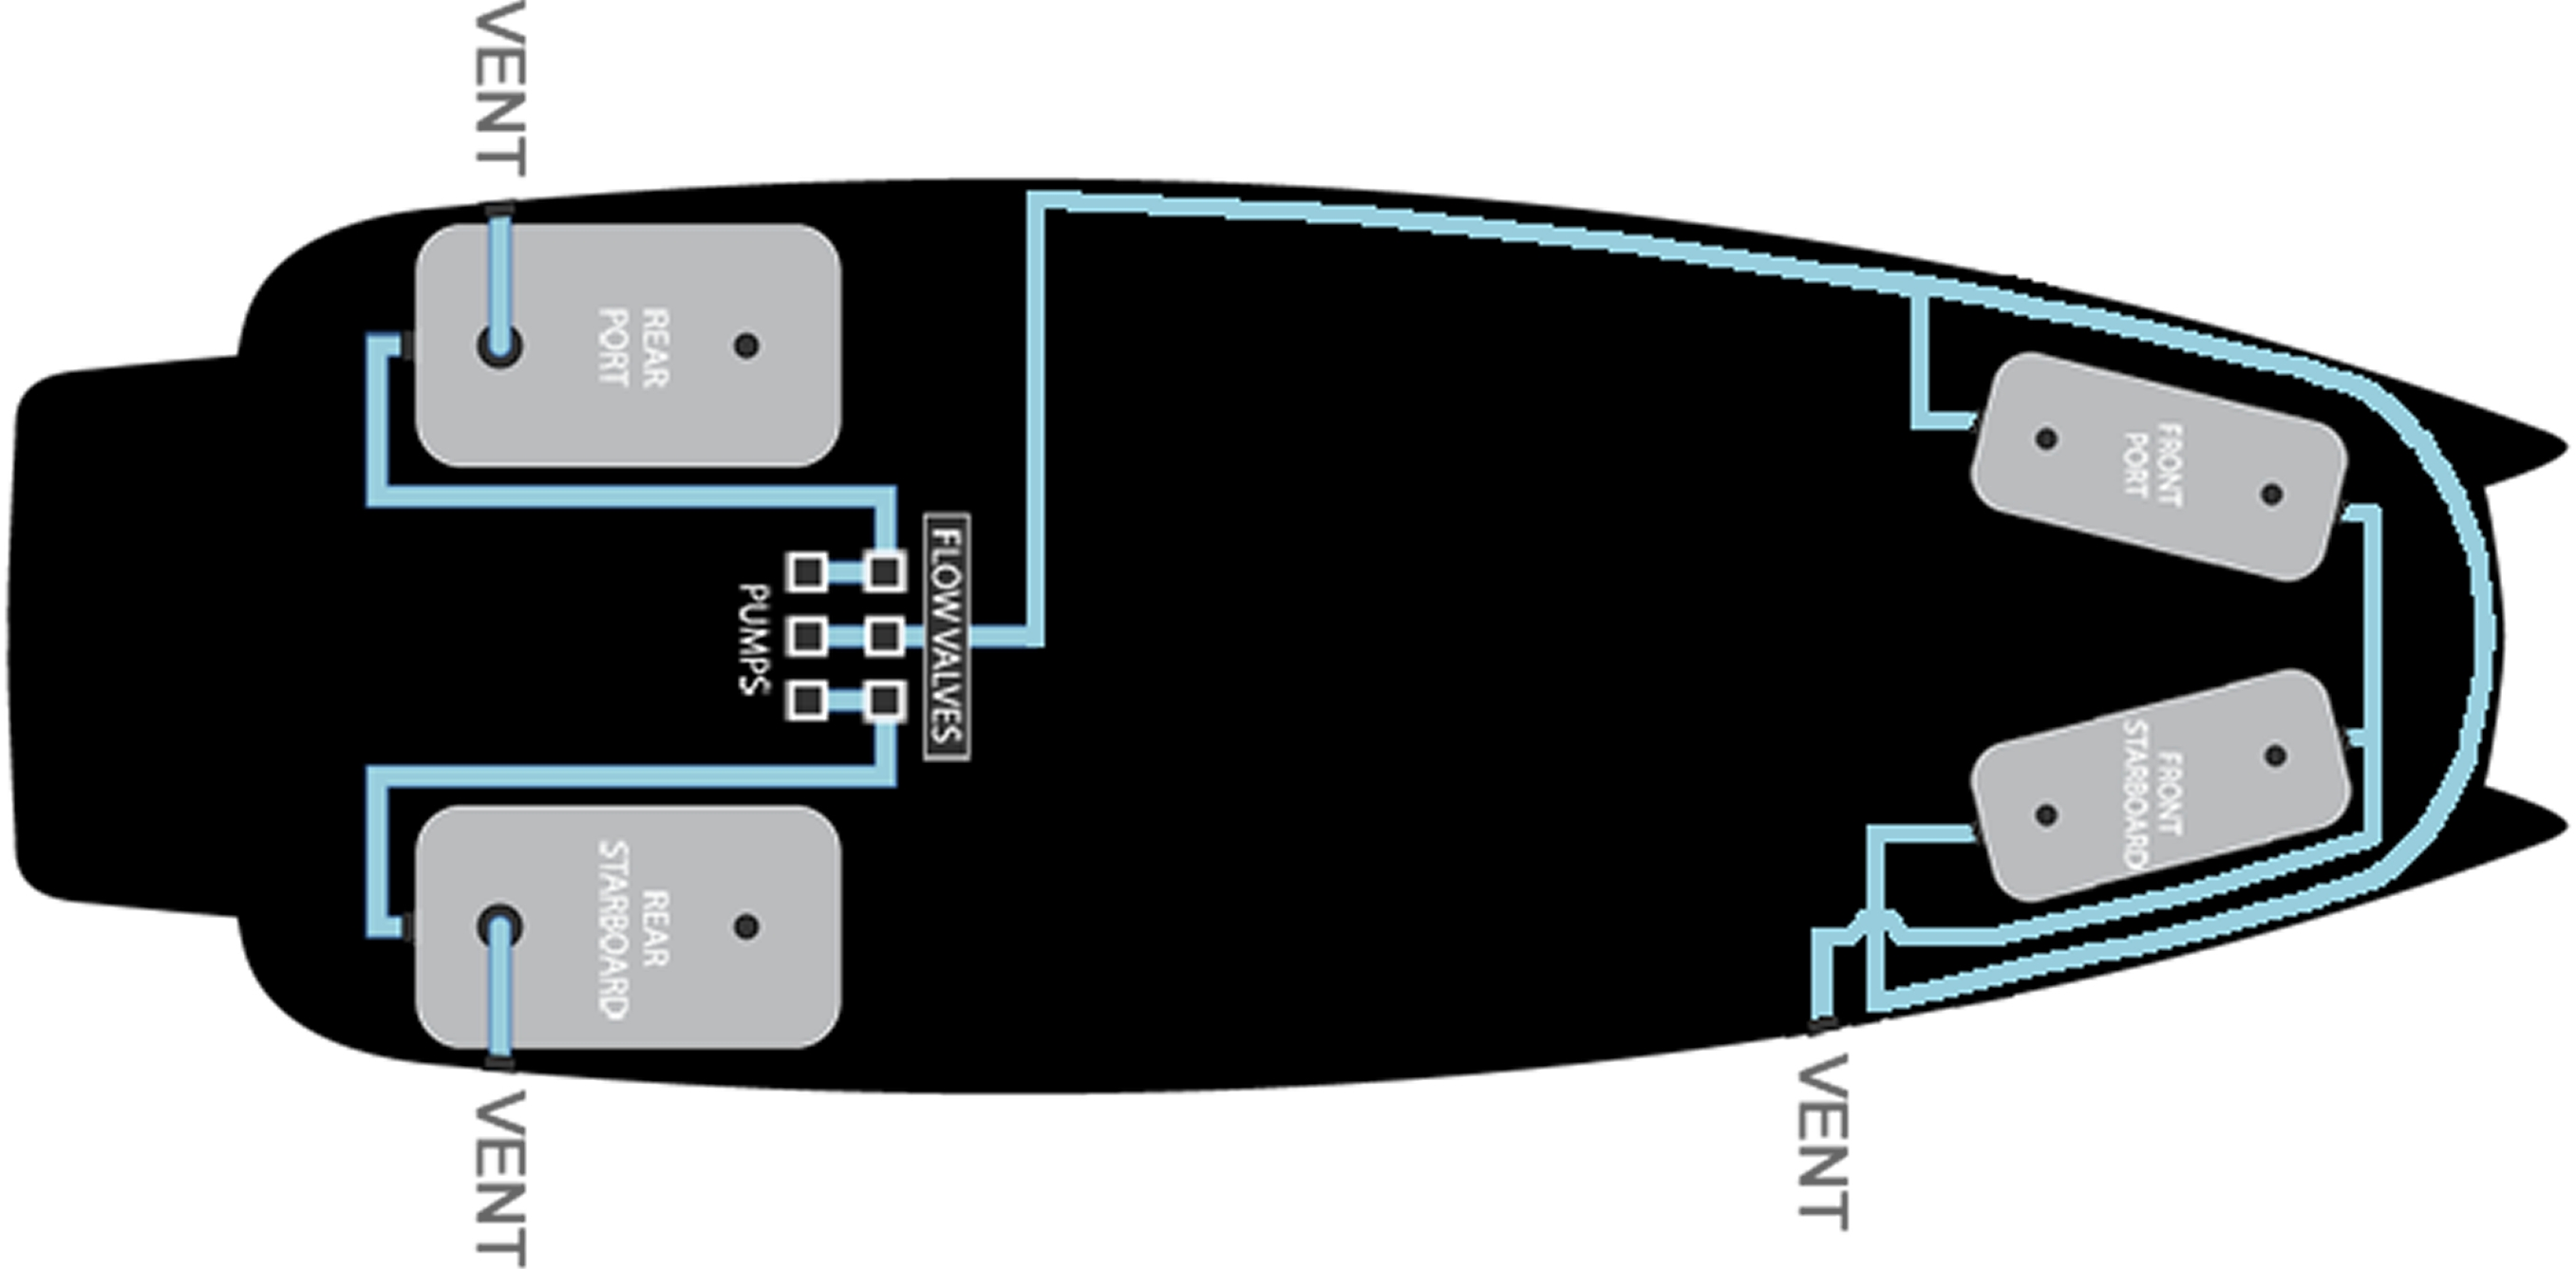 New Diagram.aspx mastercraft x star ballast system mastercraft ballast system mastercraft wiring diagram at gsmx.co